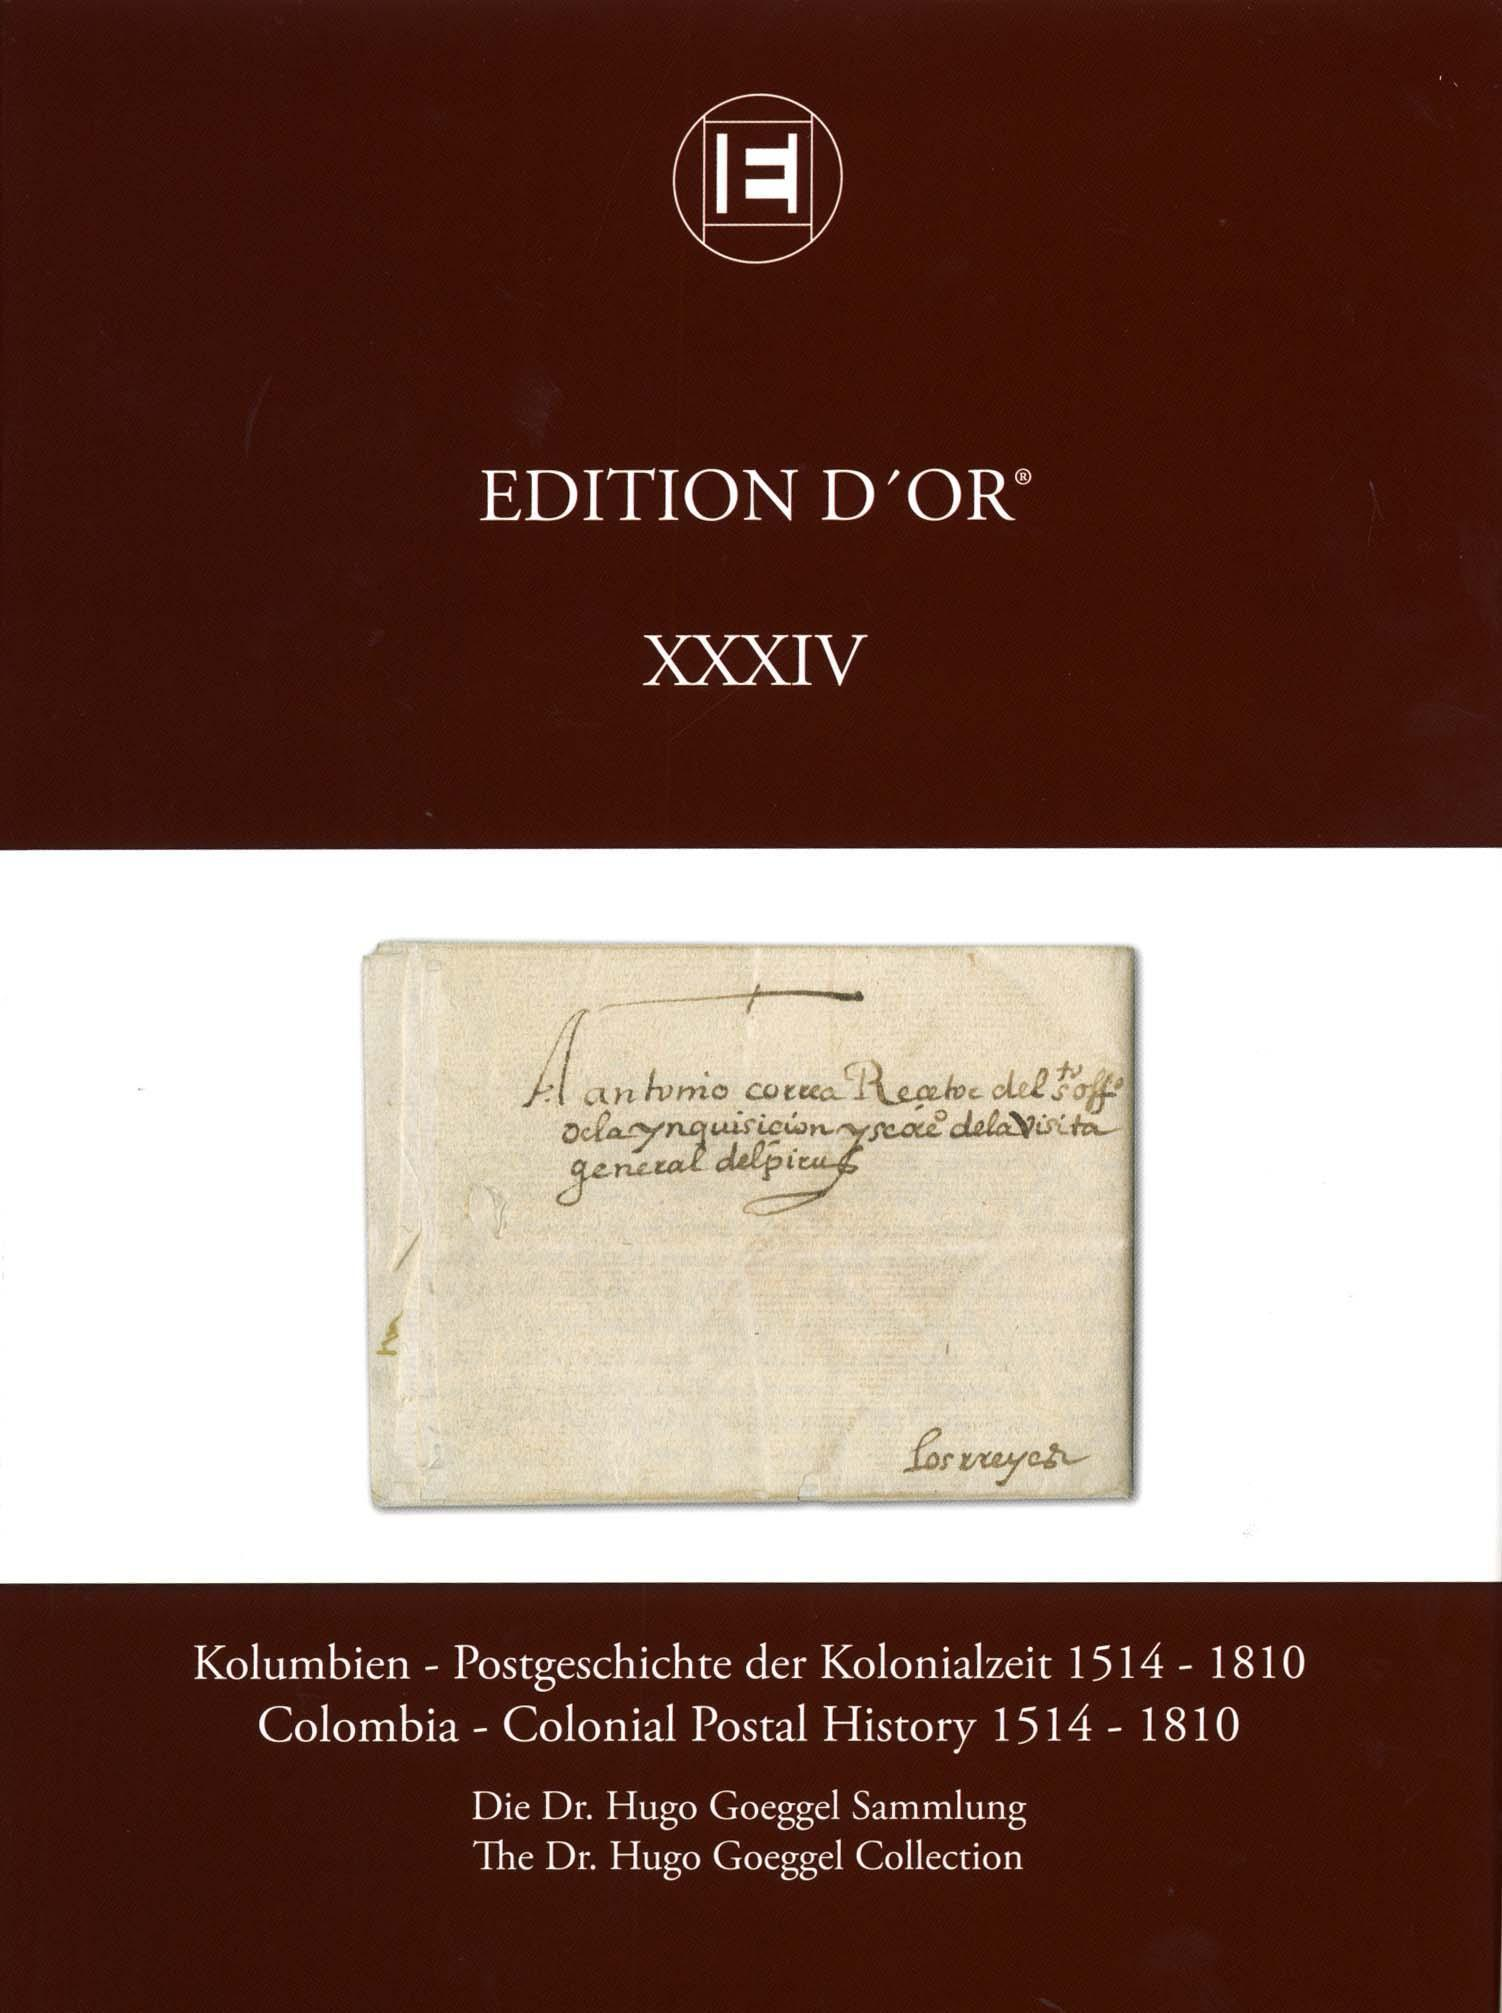 Vol. 34: Colombia - Colonial Postal History 1514-1810 • The Dr. Hugo Goeggel Collection